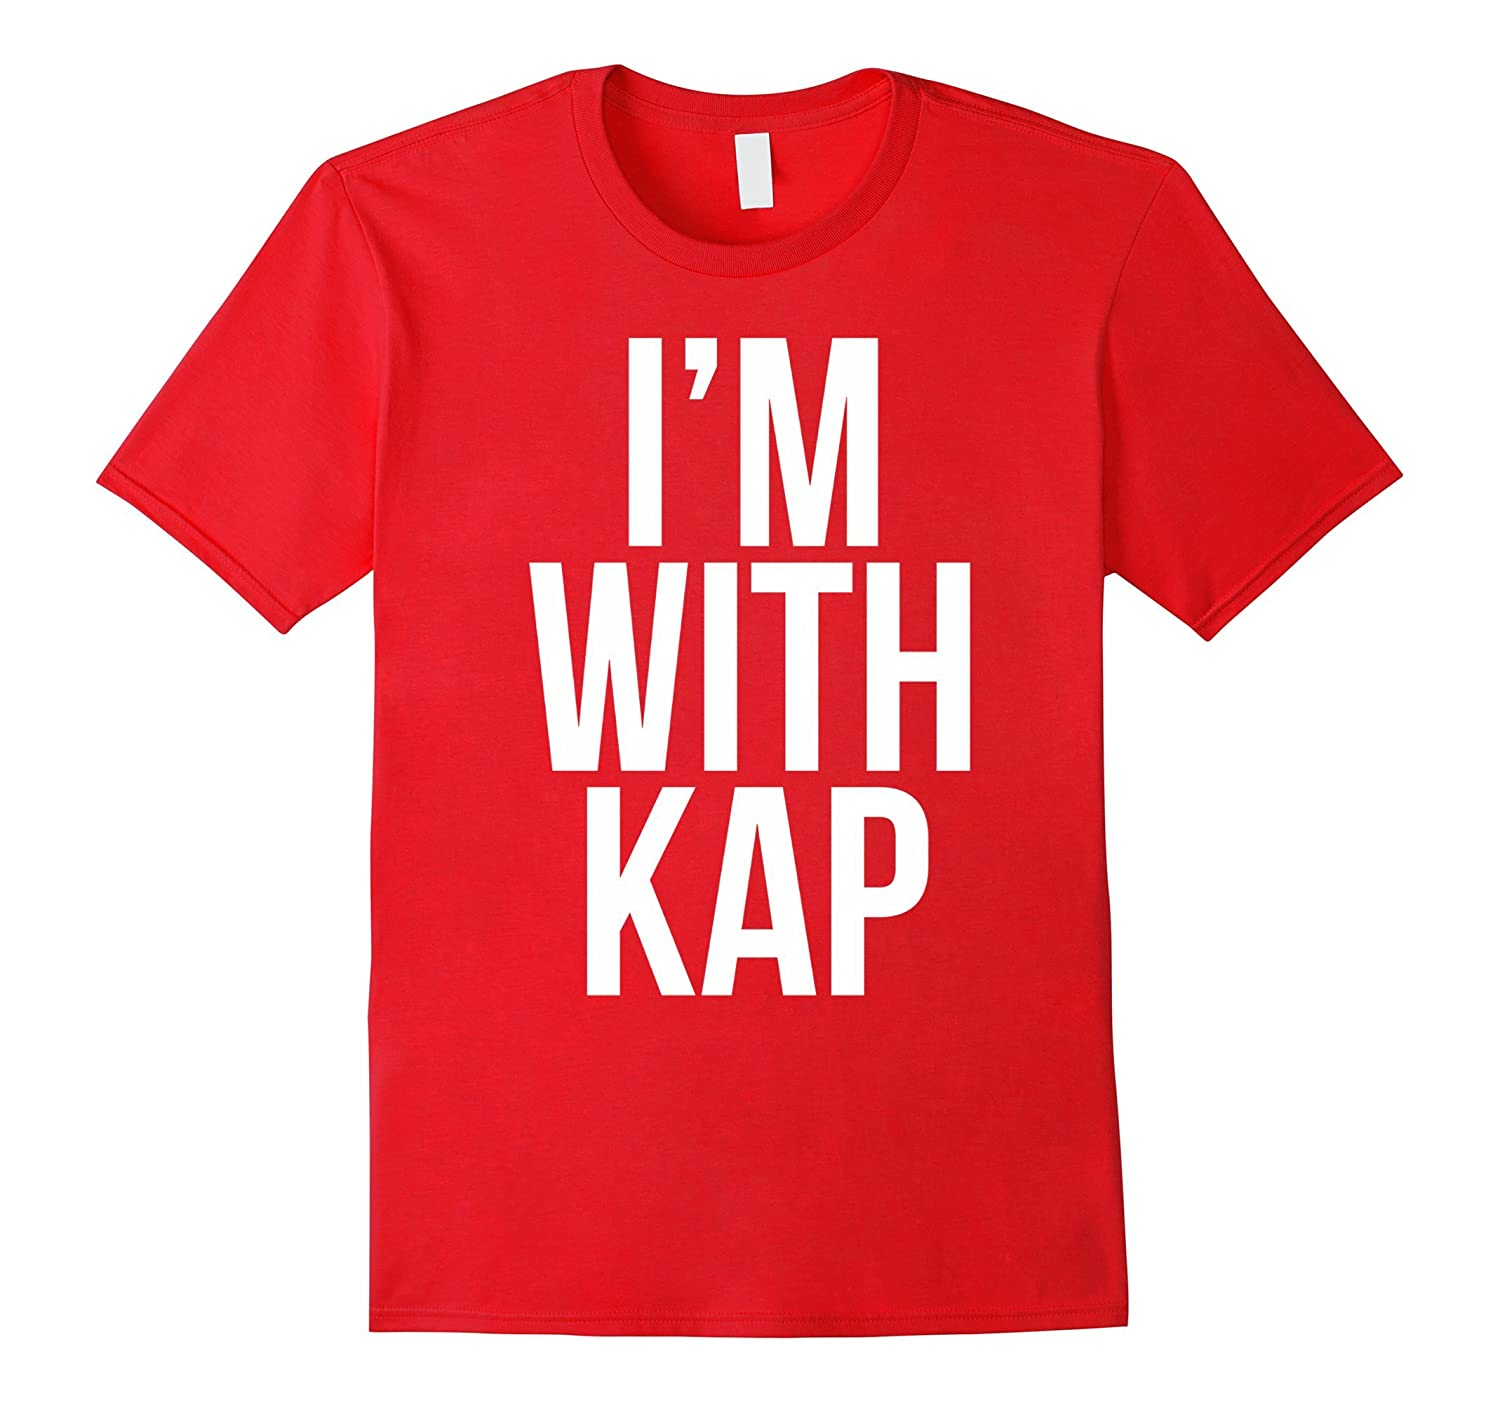 I'M WITH KAP #IMWITHKAP PROTEST TSHIRT-T-Shirt